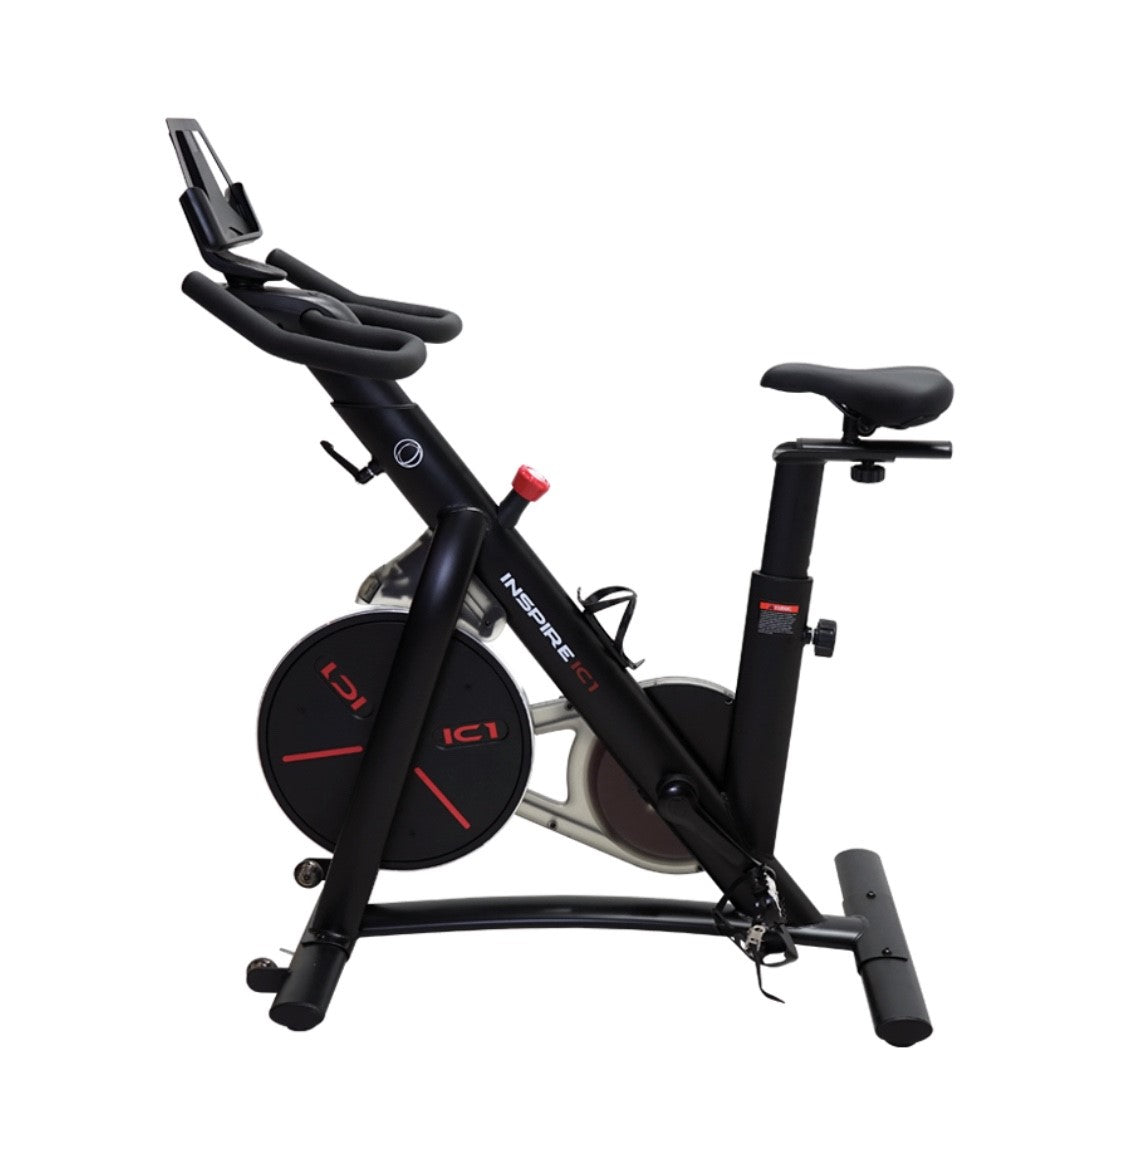 Inspire Fitness Ic1 Spin Bike Indoor Workout Bike